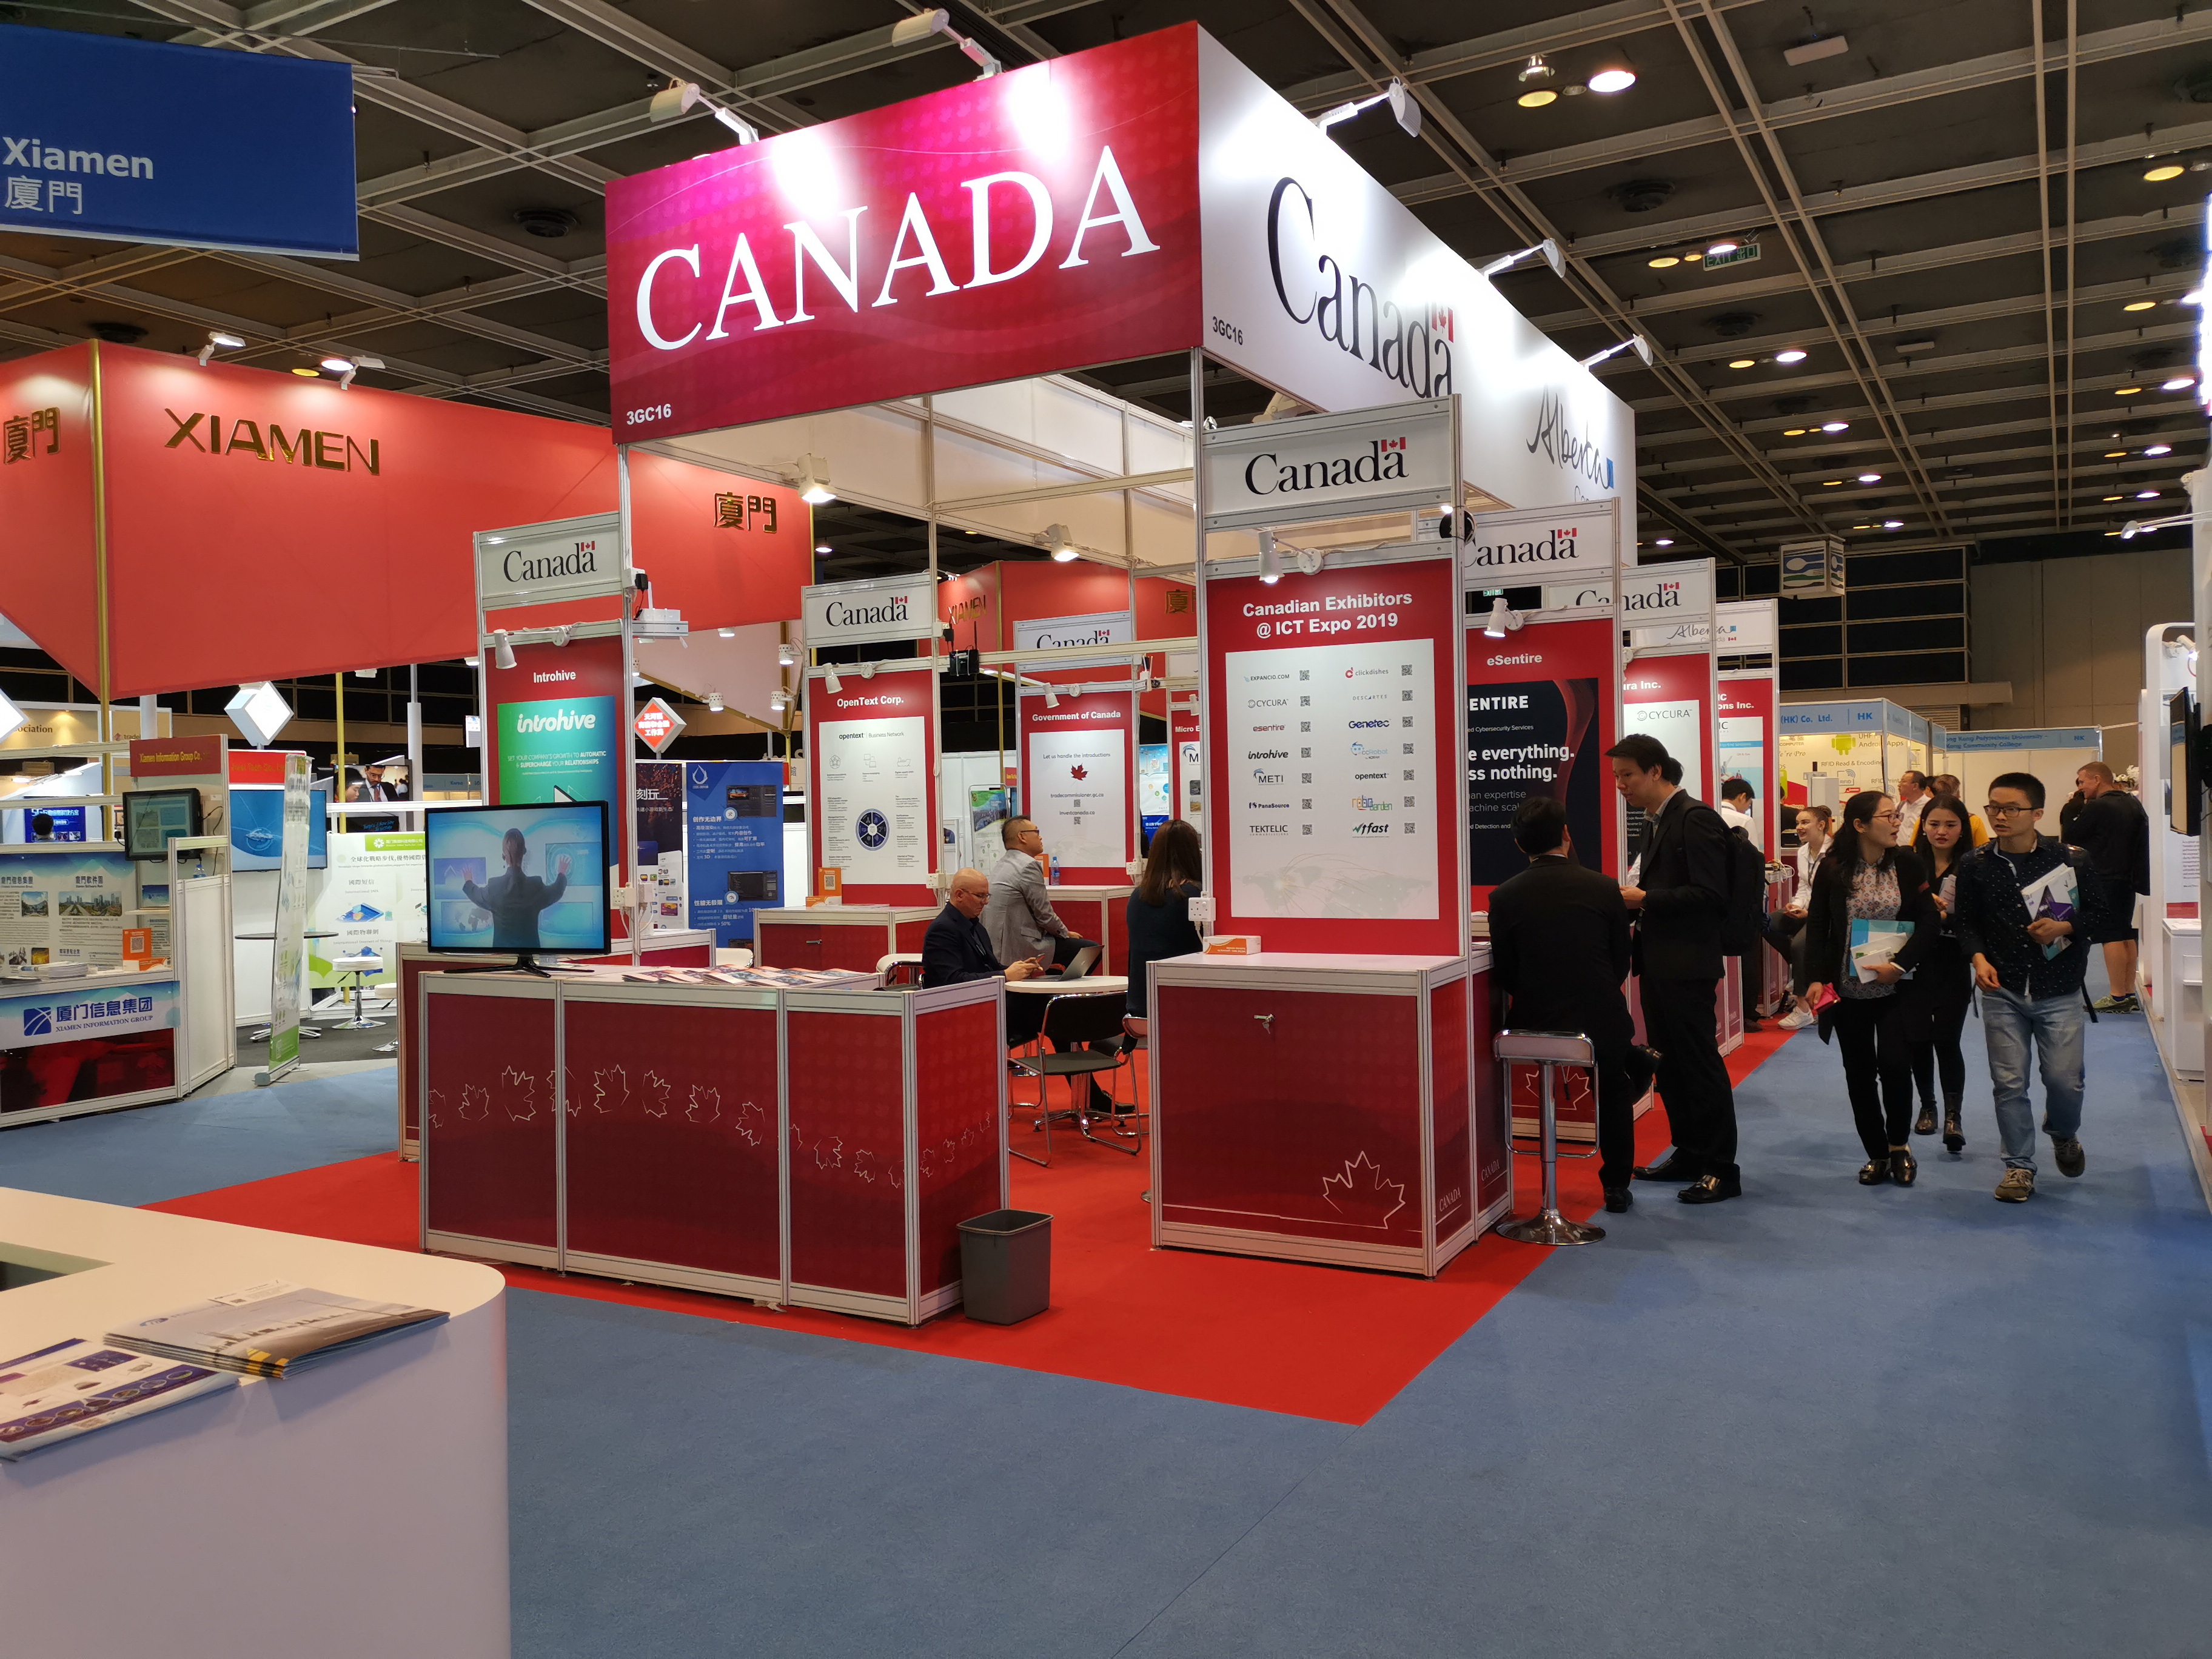 Canada booth at Hong Kong ICT Expo